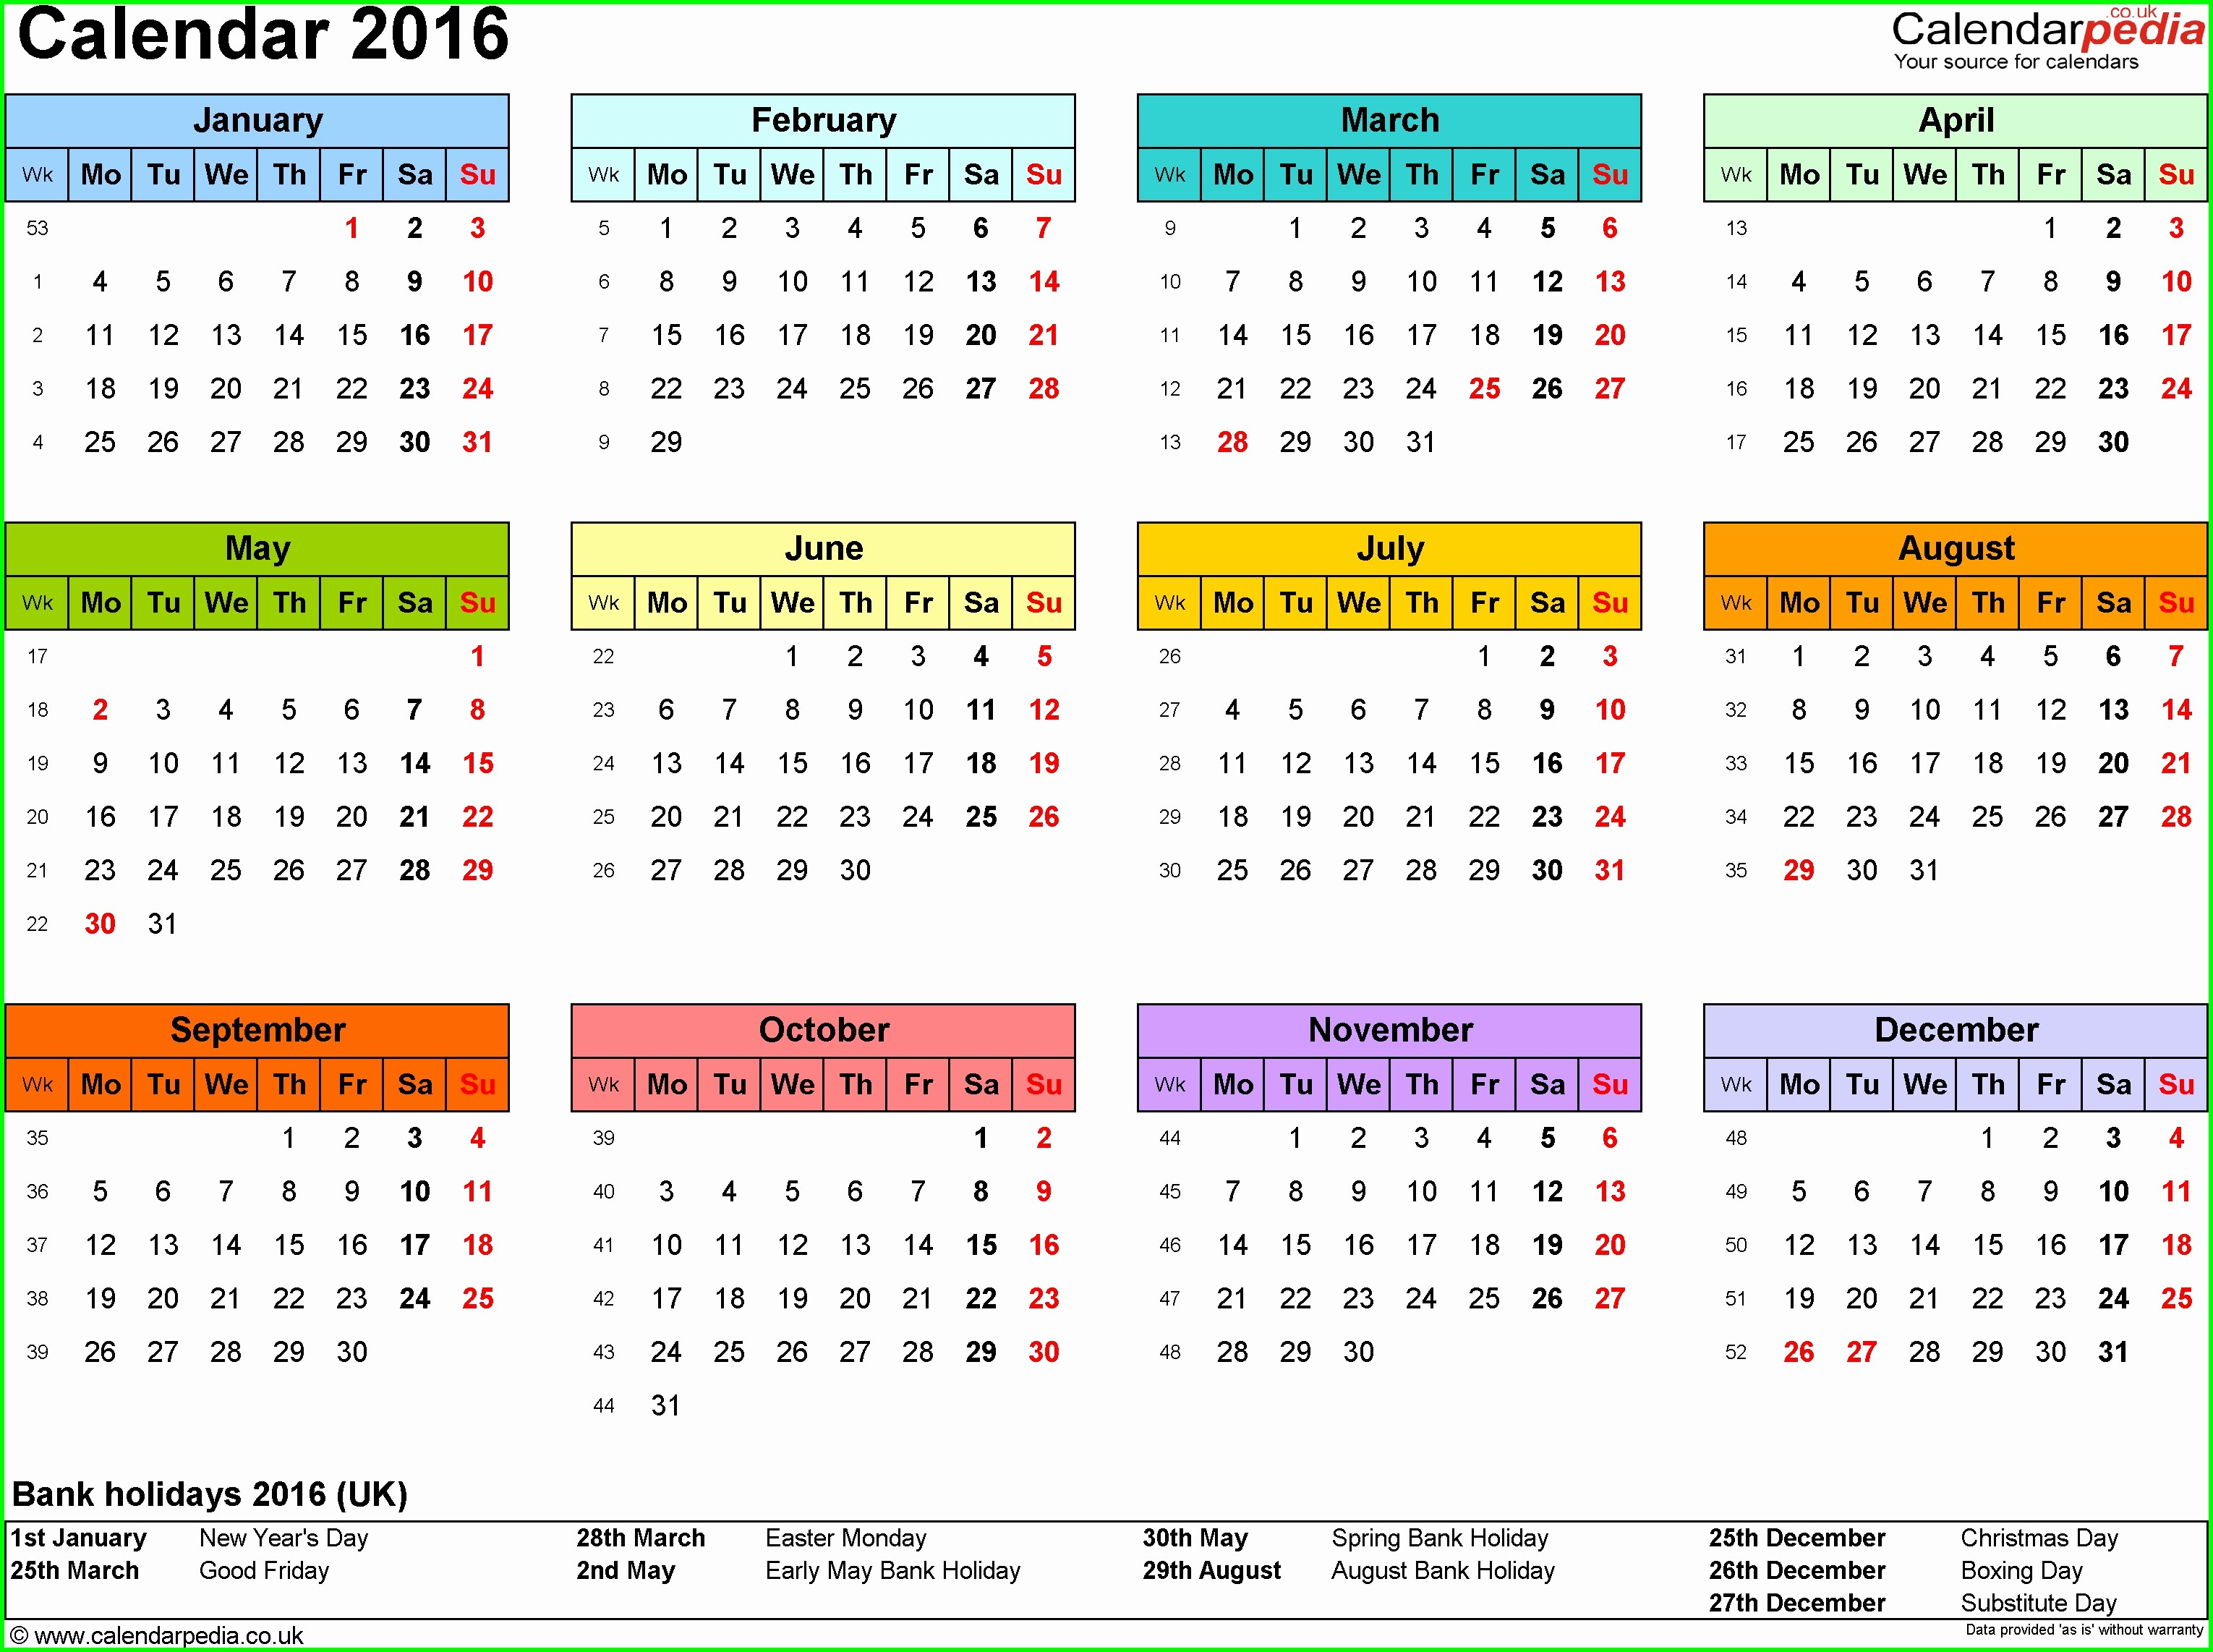 Calendar 2016 to Write On Lovely Printable Workweek Calendars 2016 You Can Write In Free